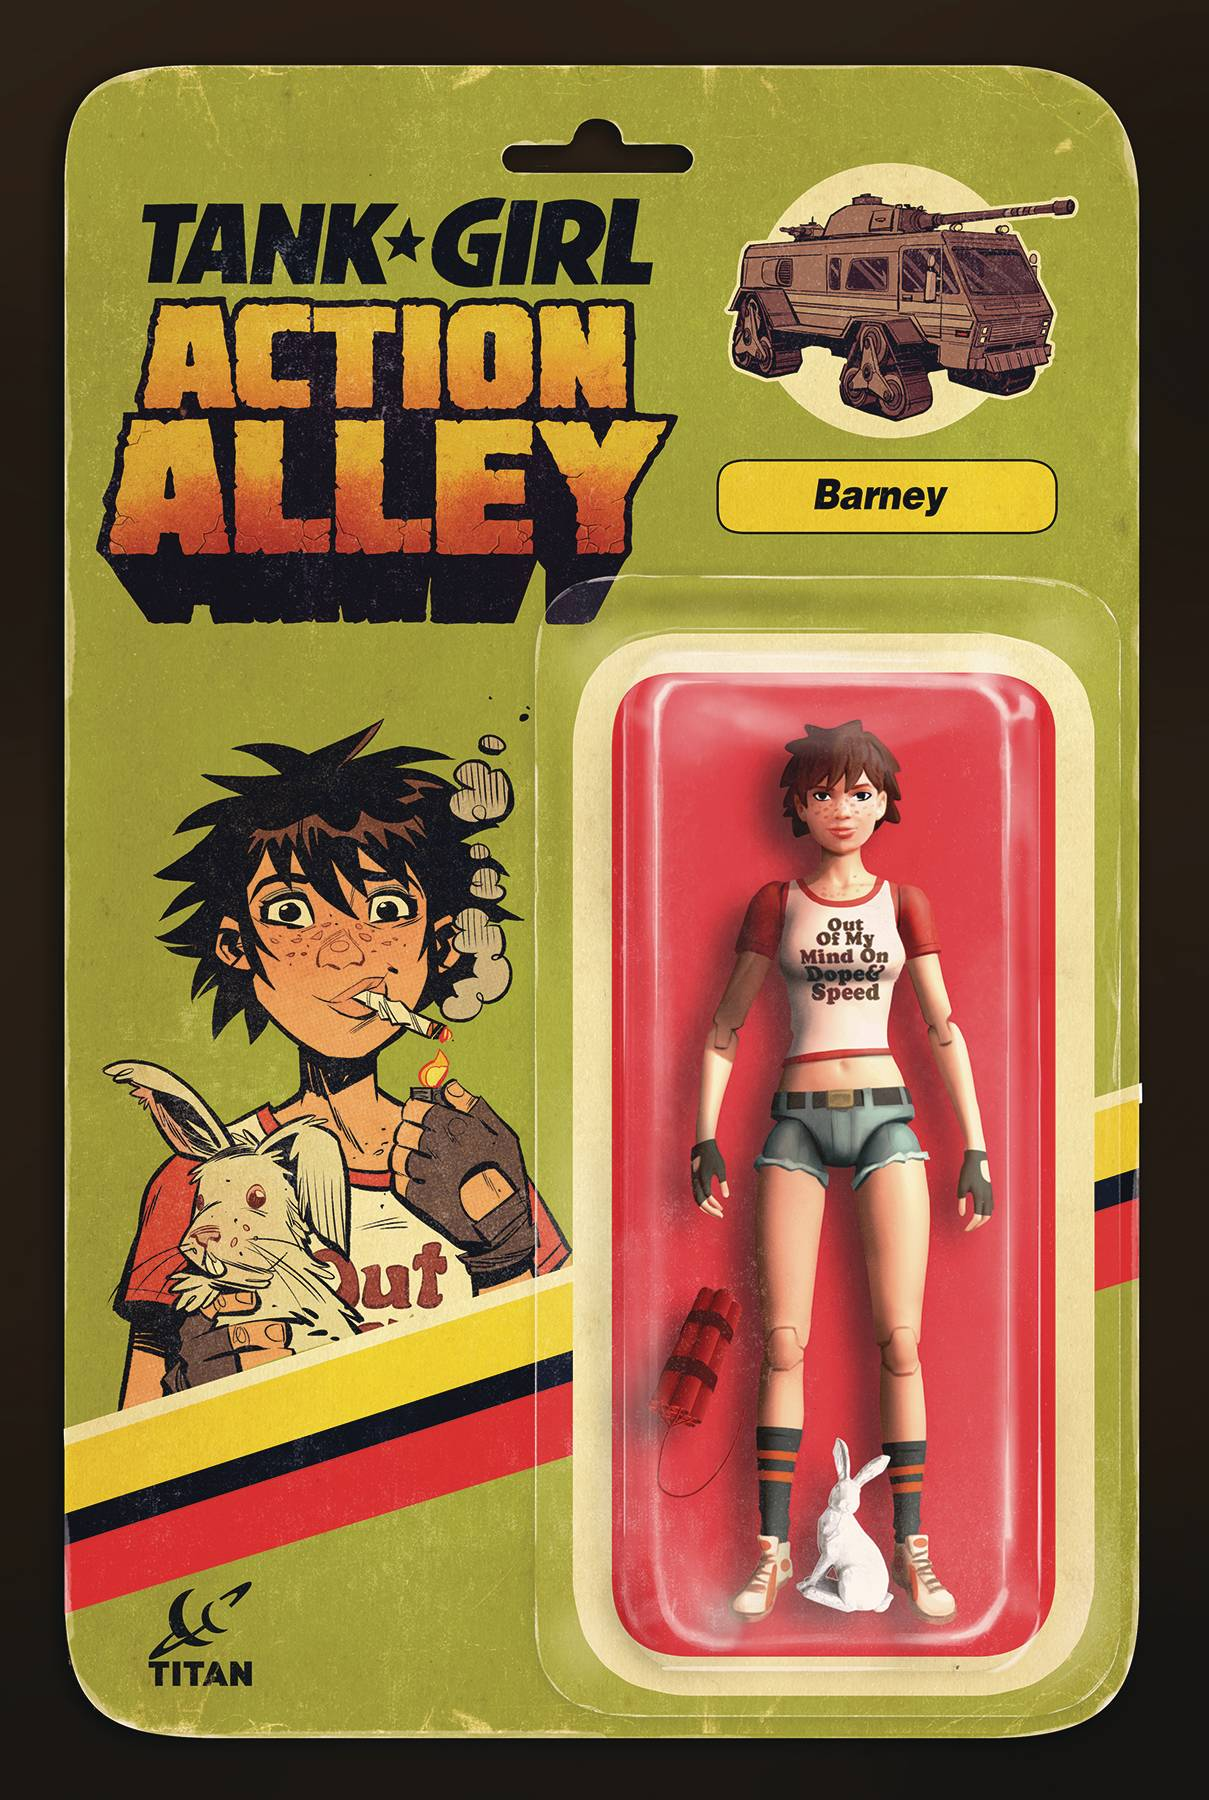 TANK GIRL ACTION ALLEY 3 CVR B ACTION FIGURE.jpg